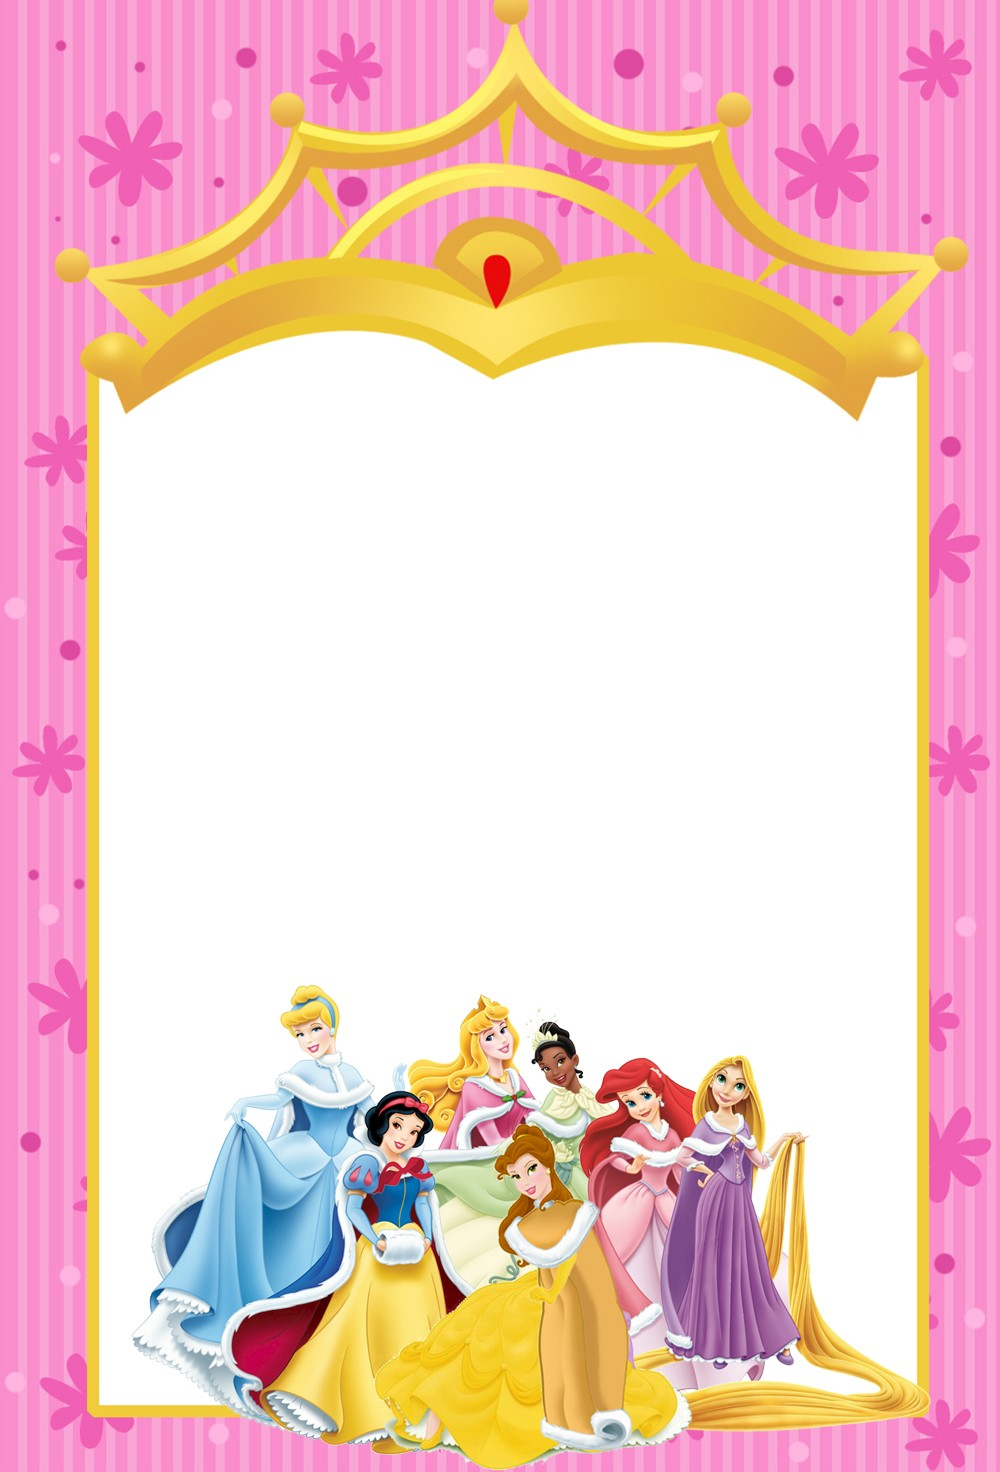 004 Disney Princess Party Invitations For Best Results And Winsome intended for sizing 1000 X 1472